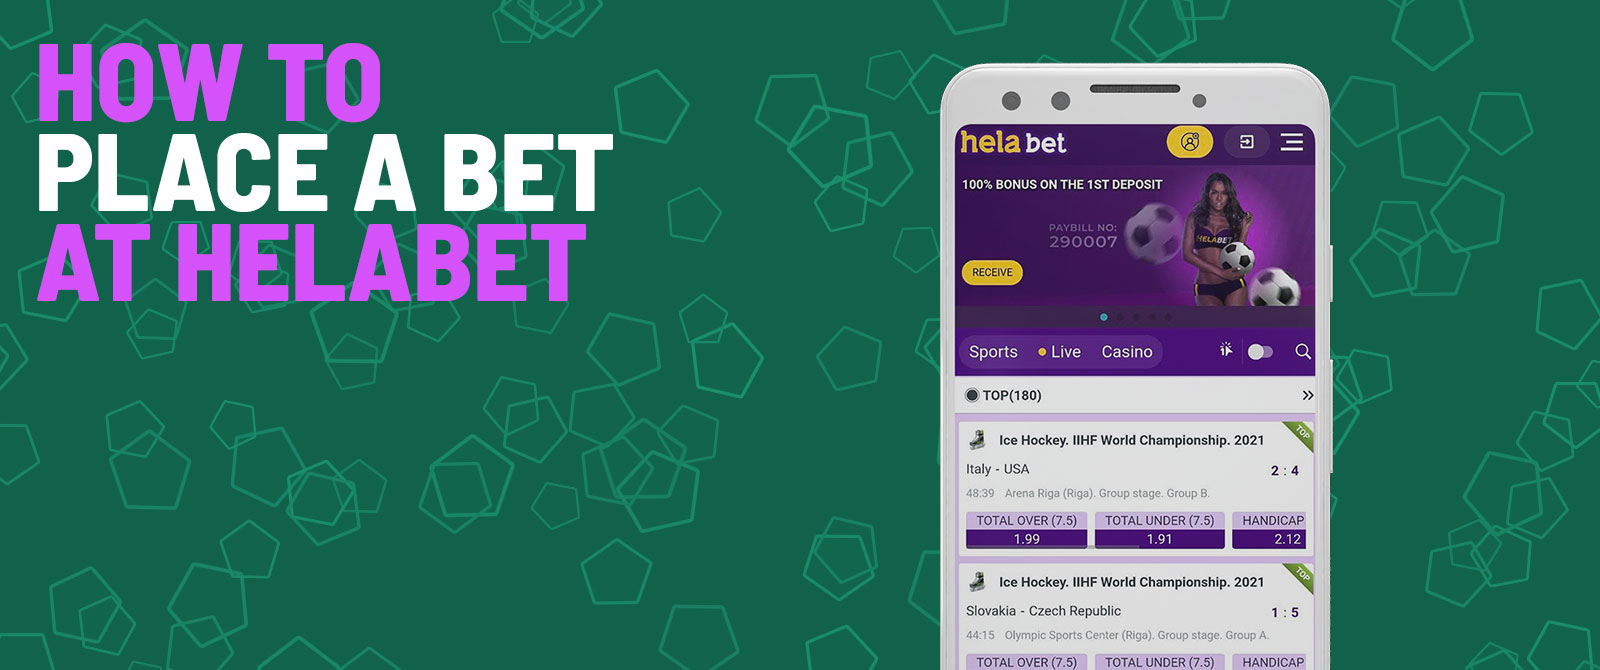 how to place a bet at helabet